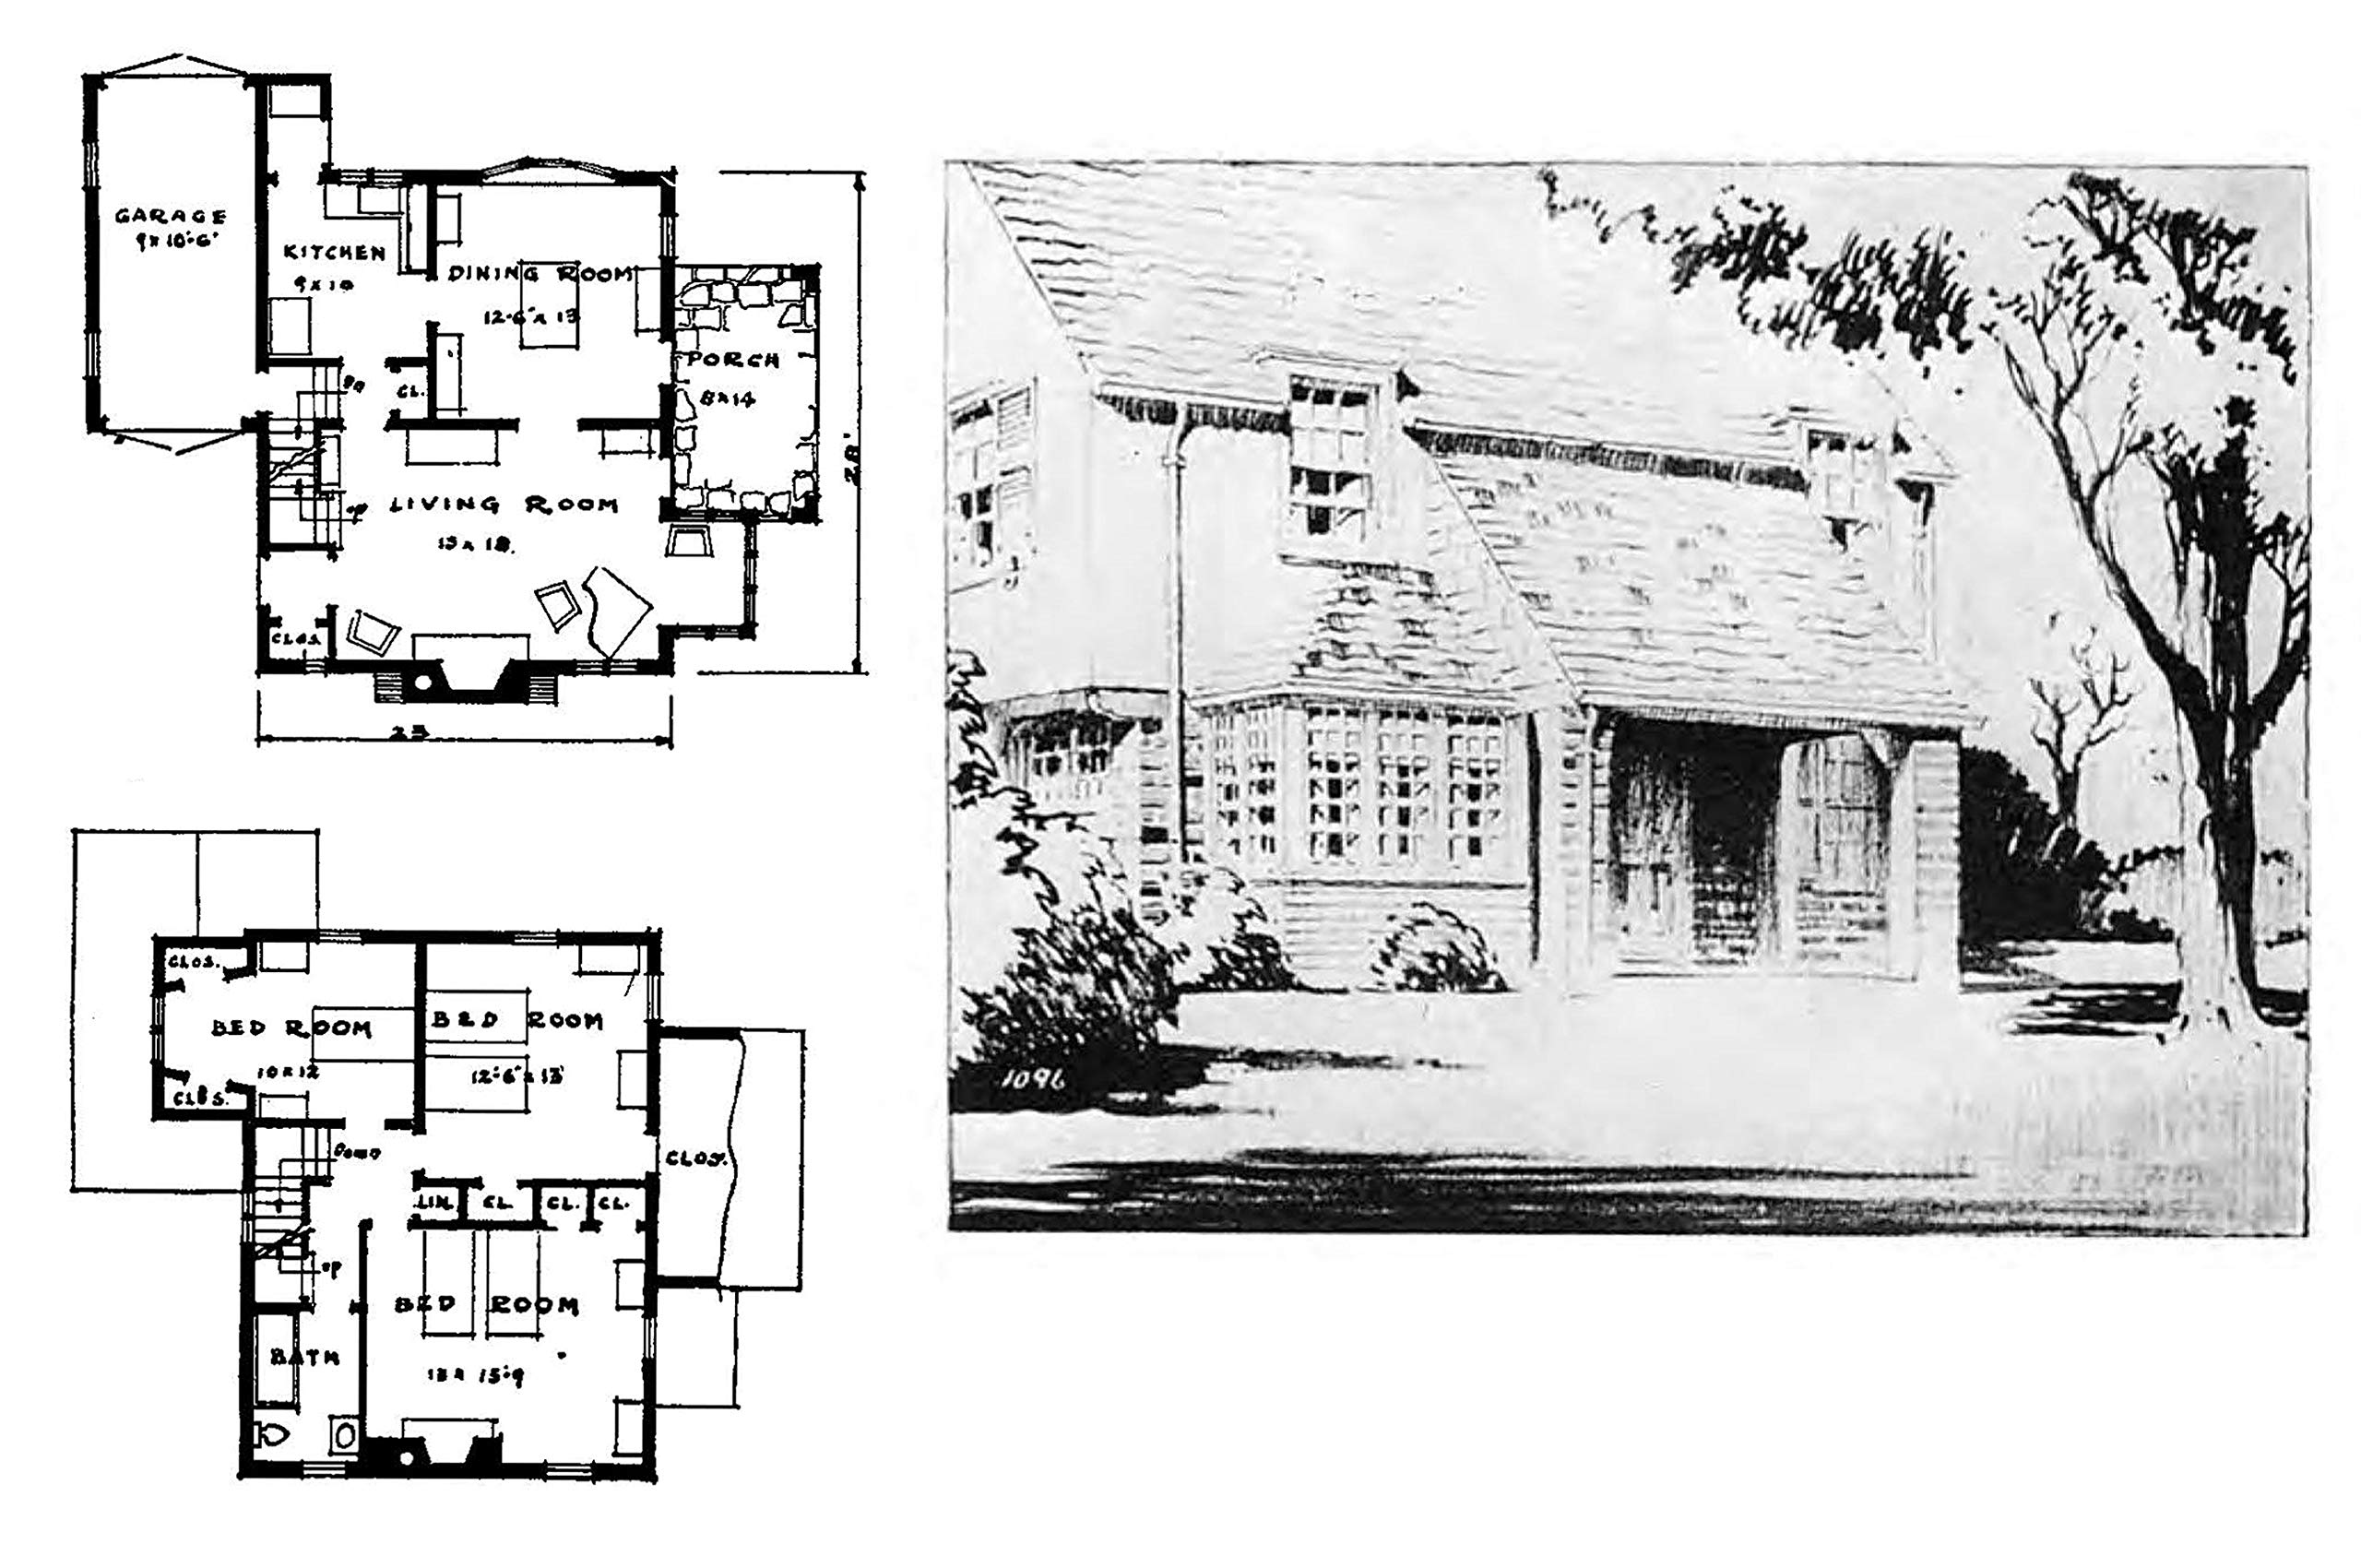 Authentic Small Houses of the Twenties: Illustrations and ... on house plans with wrap around porch, cabin plans with sleeping porch, home with sleeping porch, house plans with screened porch, house plans for homes built on a slope, waterfront house plan with porch,